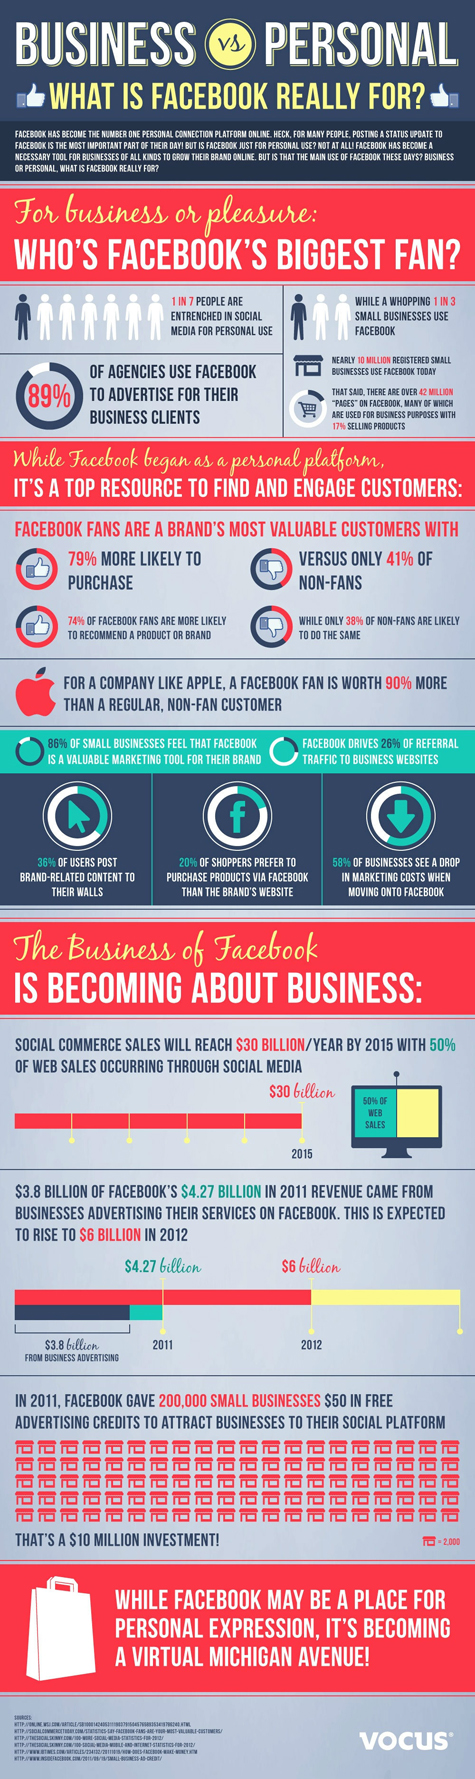 50 Percent of Web Sales to Occur via Social Media by 2015 [Infographic]